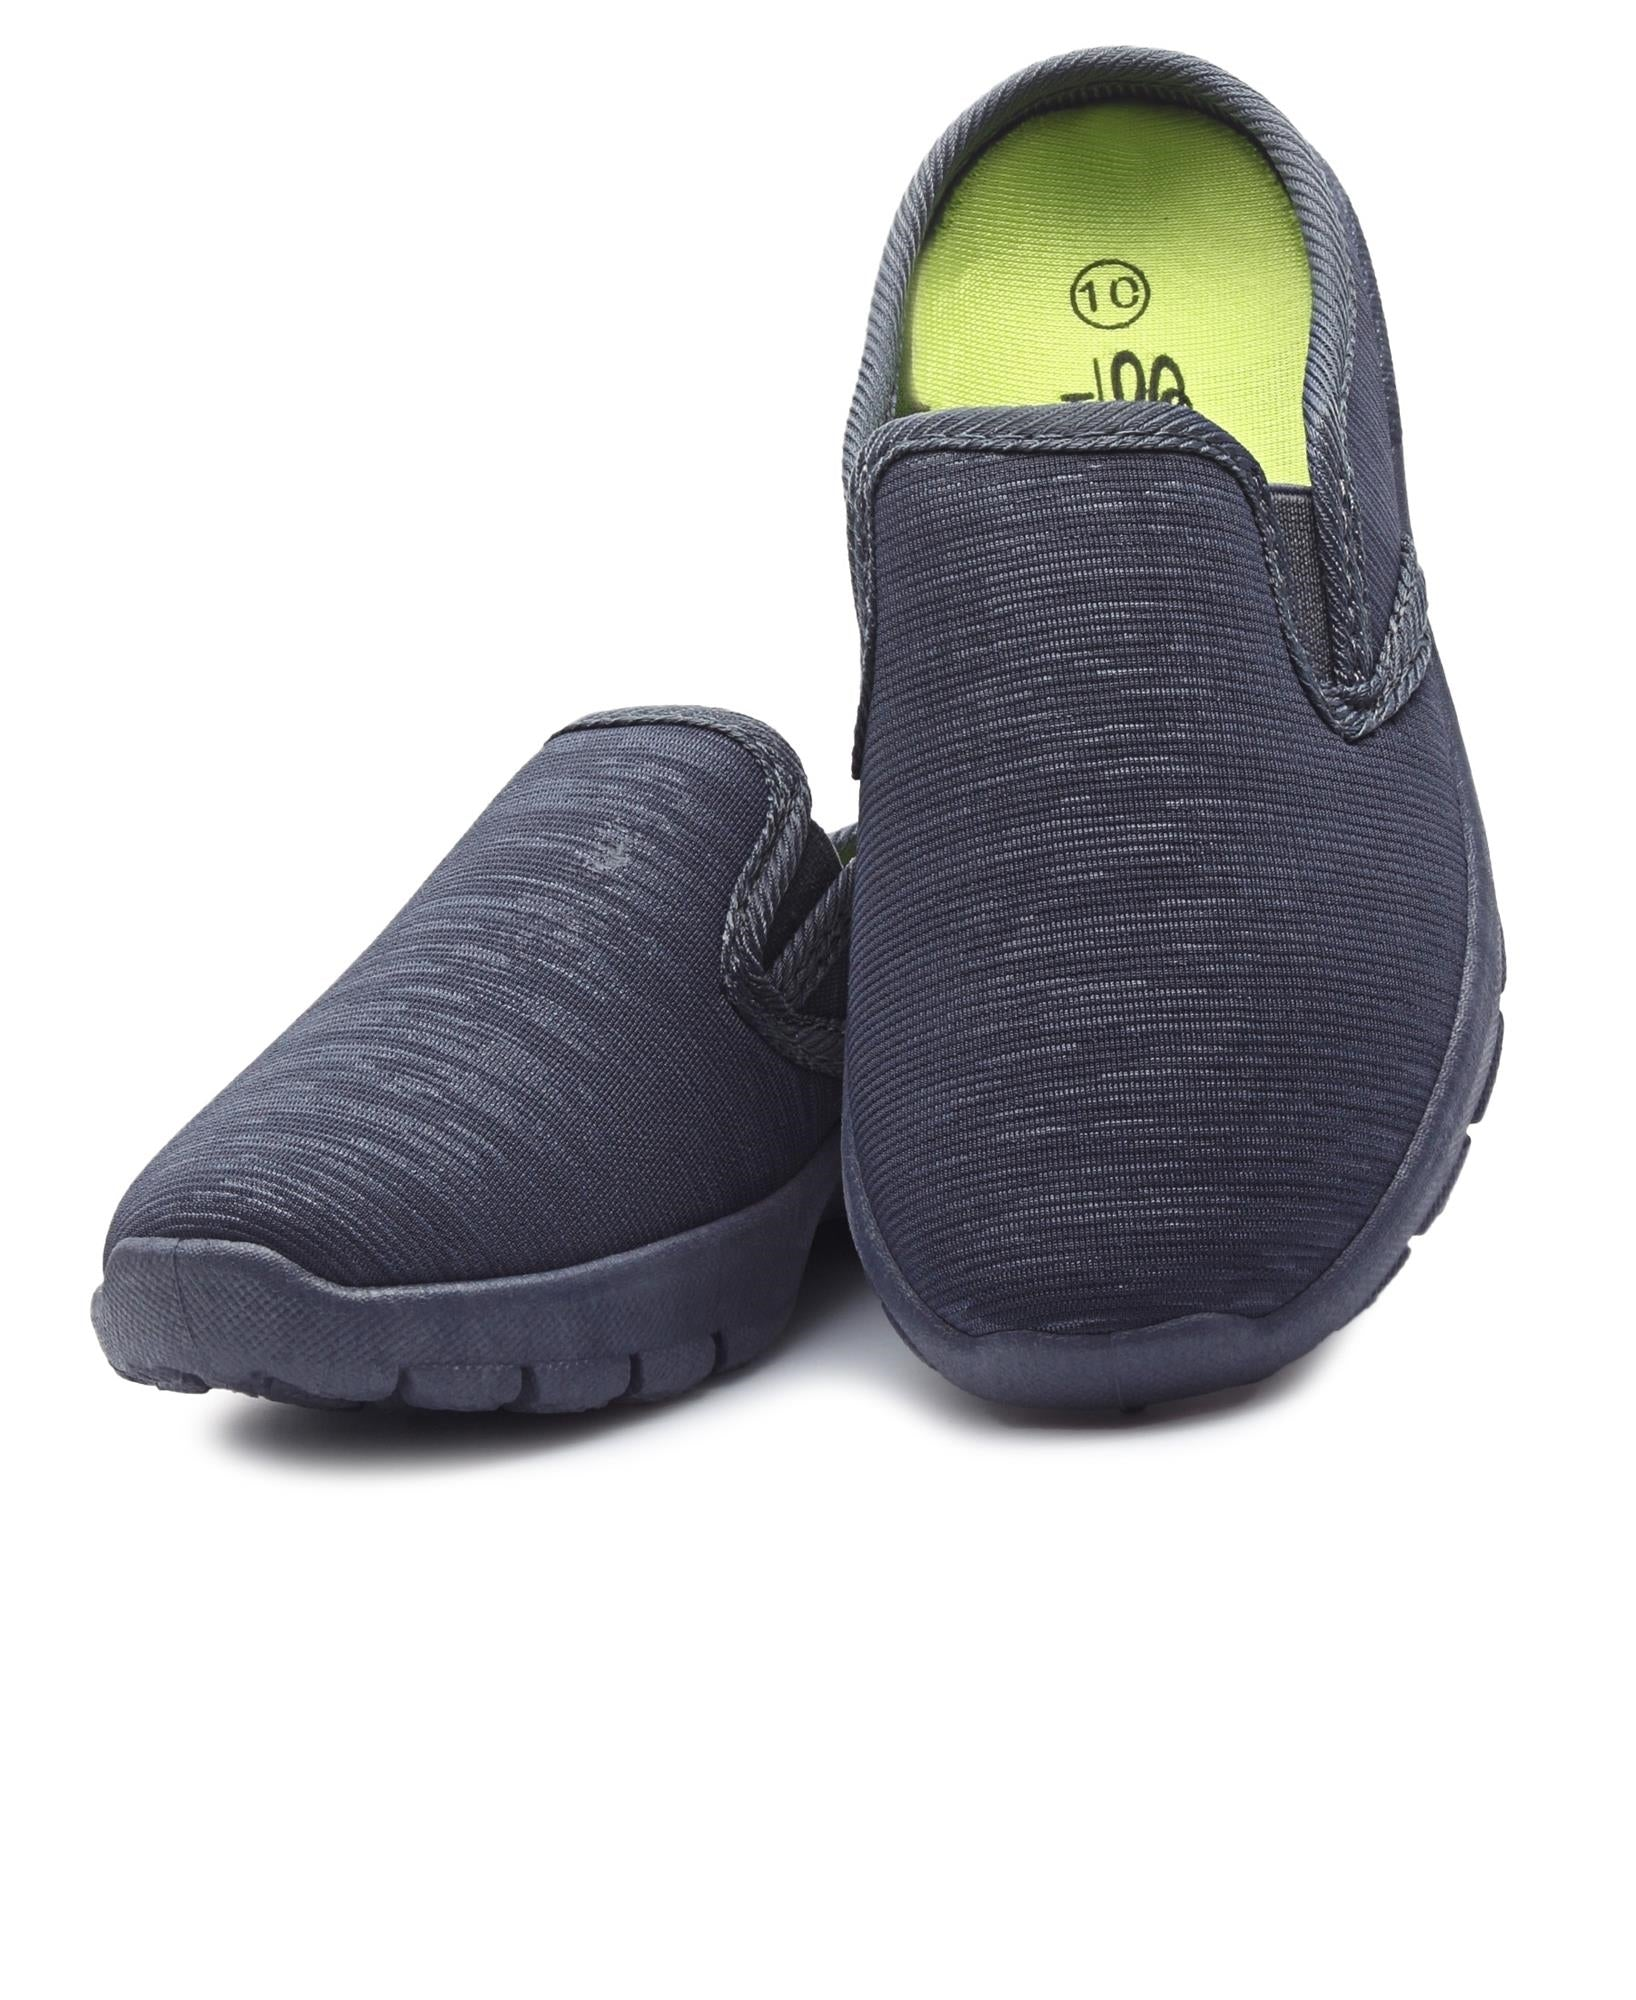 Girls Slip On - Navy